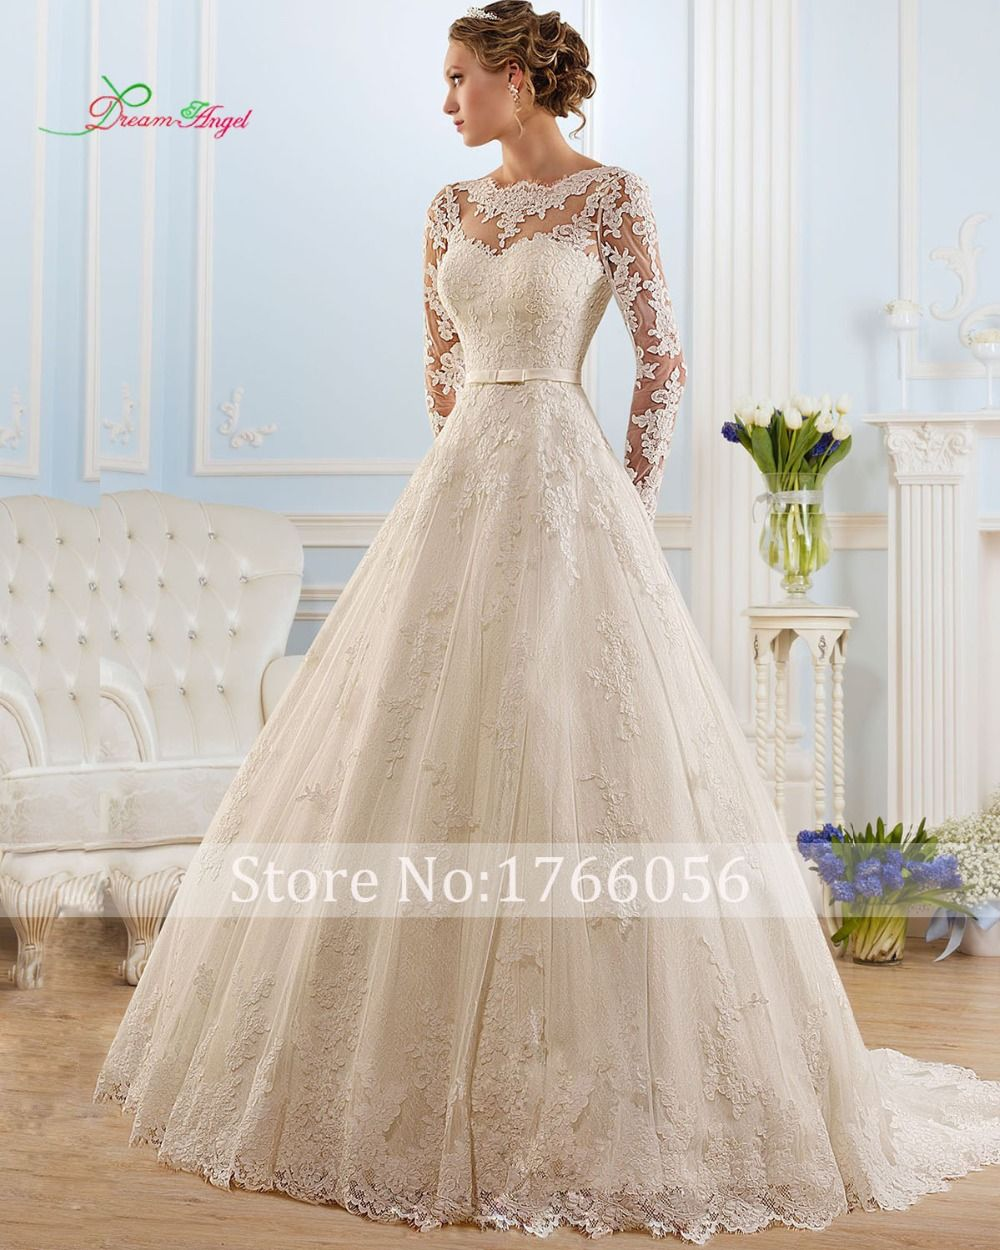 Vestido de noiva fashion wedding gowns elegant bride dress vintage